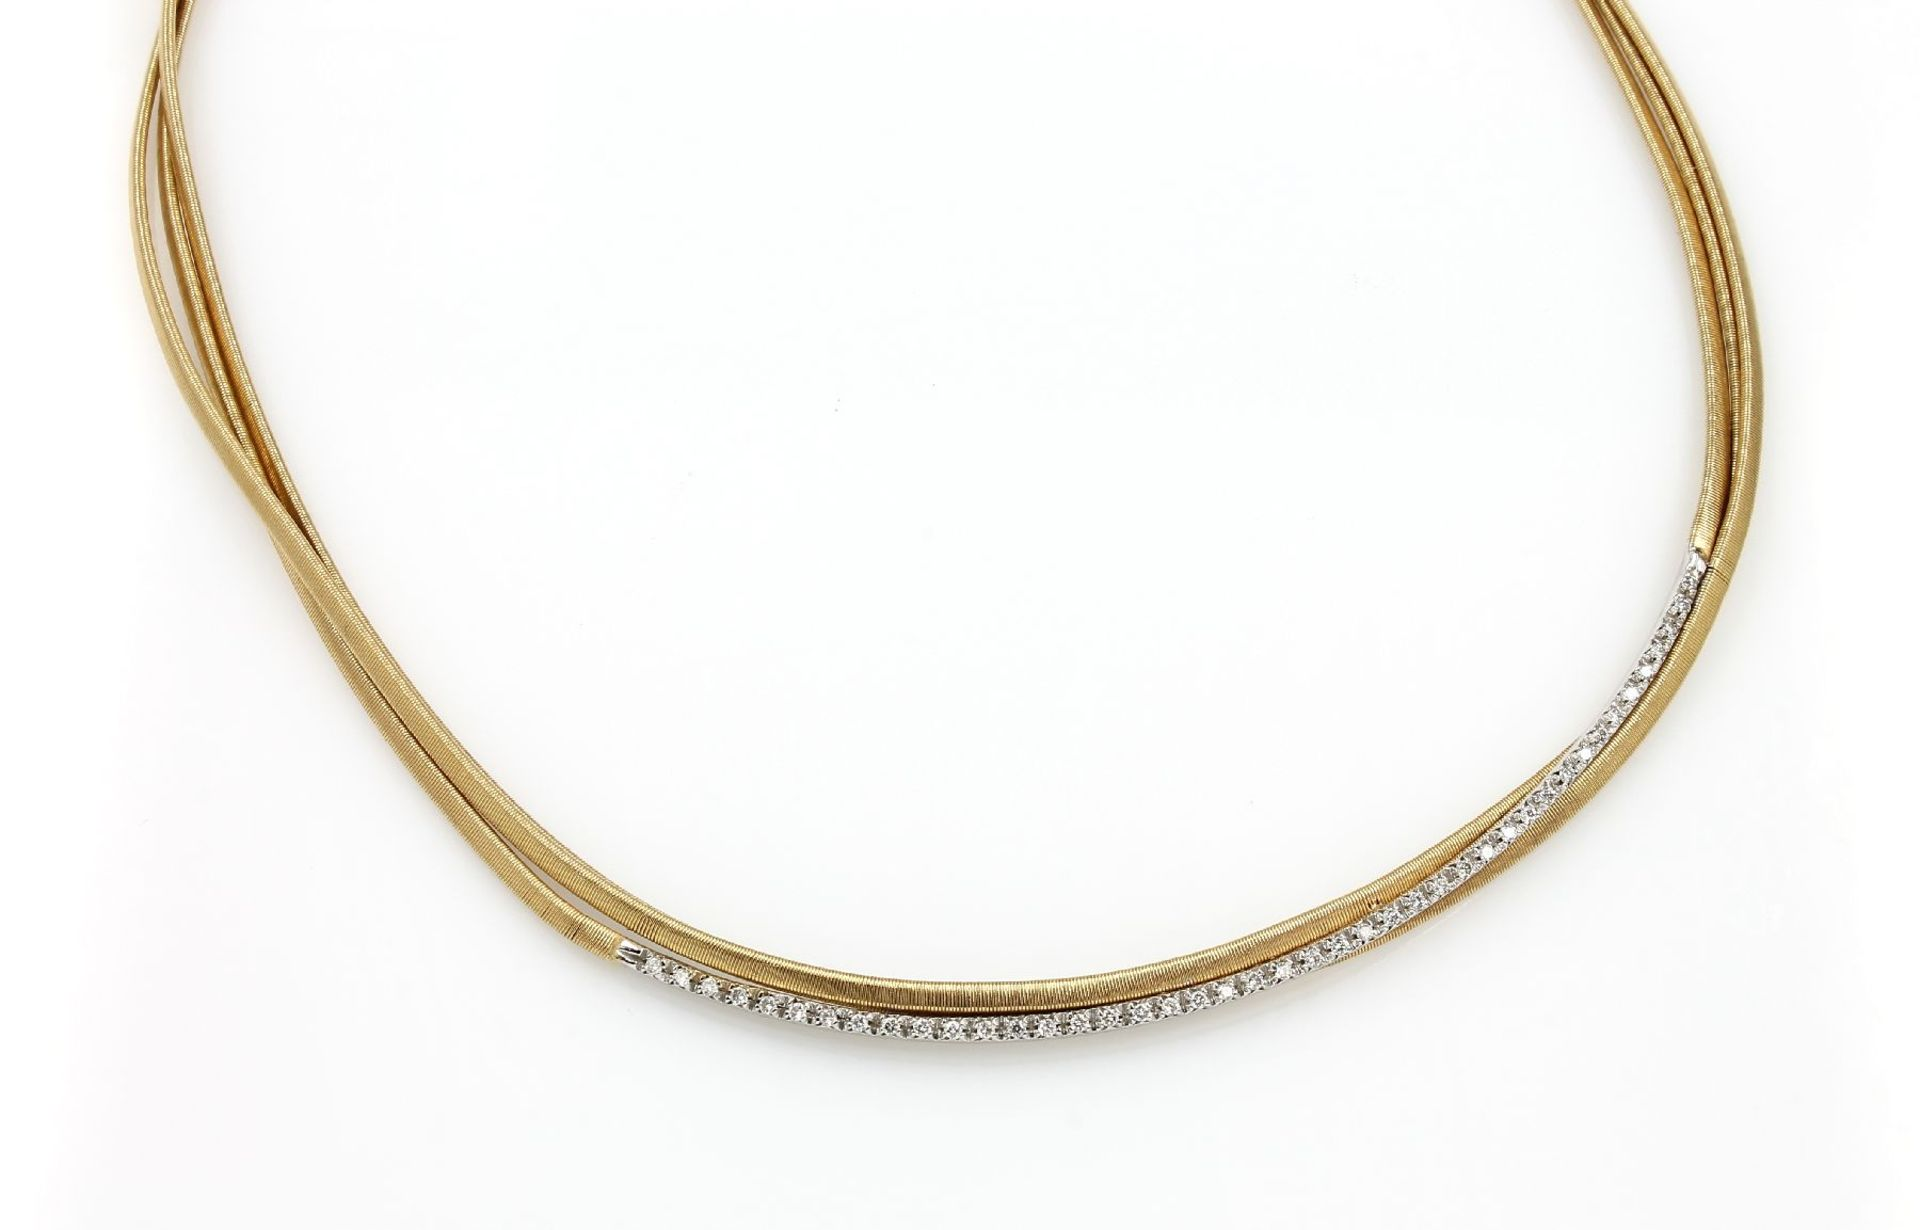 Los 61519 - 18 kt gold MARCO BIGEGO spaghetti necklace with brilliants , YG/WG 750/000, 3-rowed, brilliants